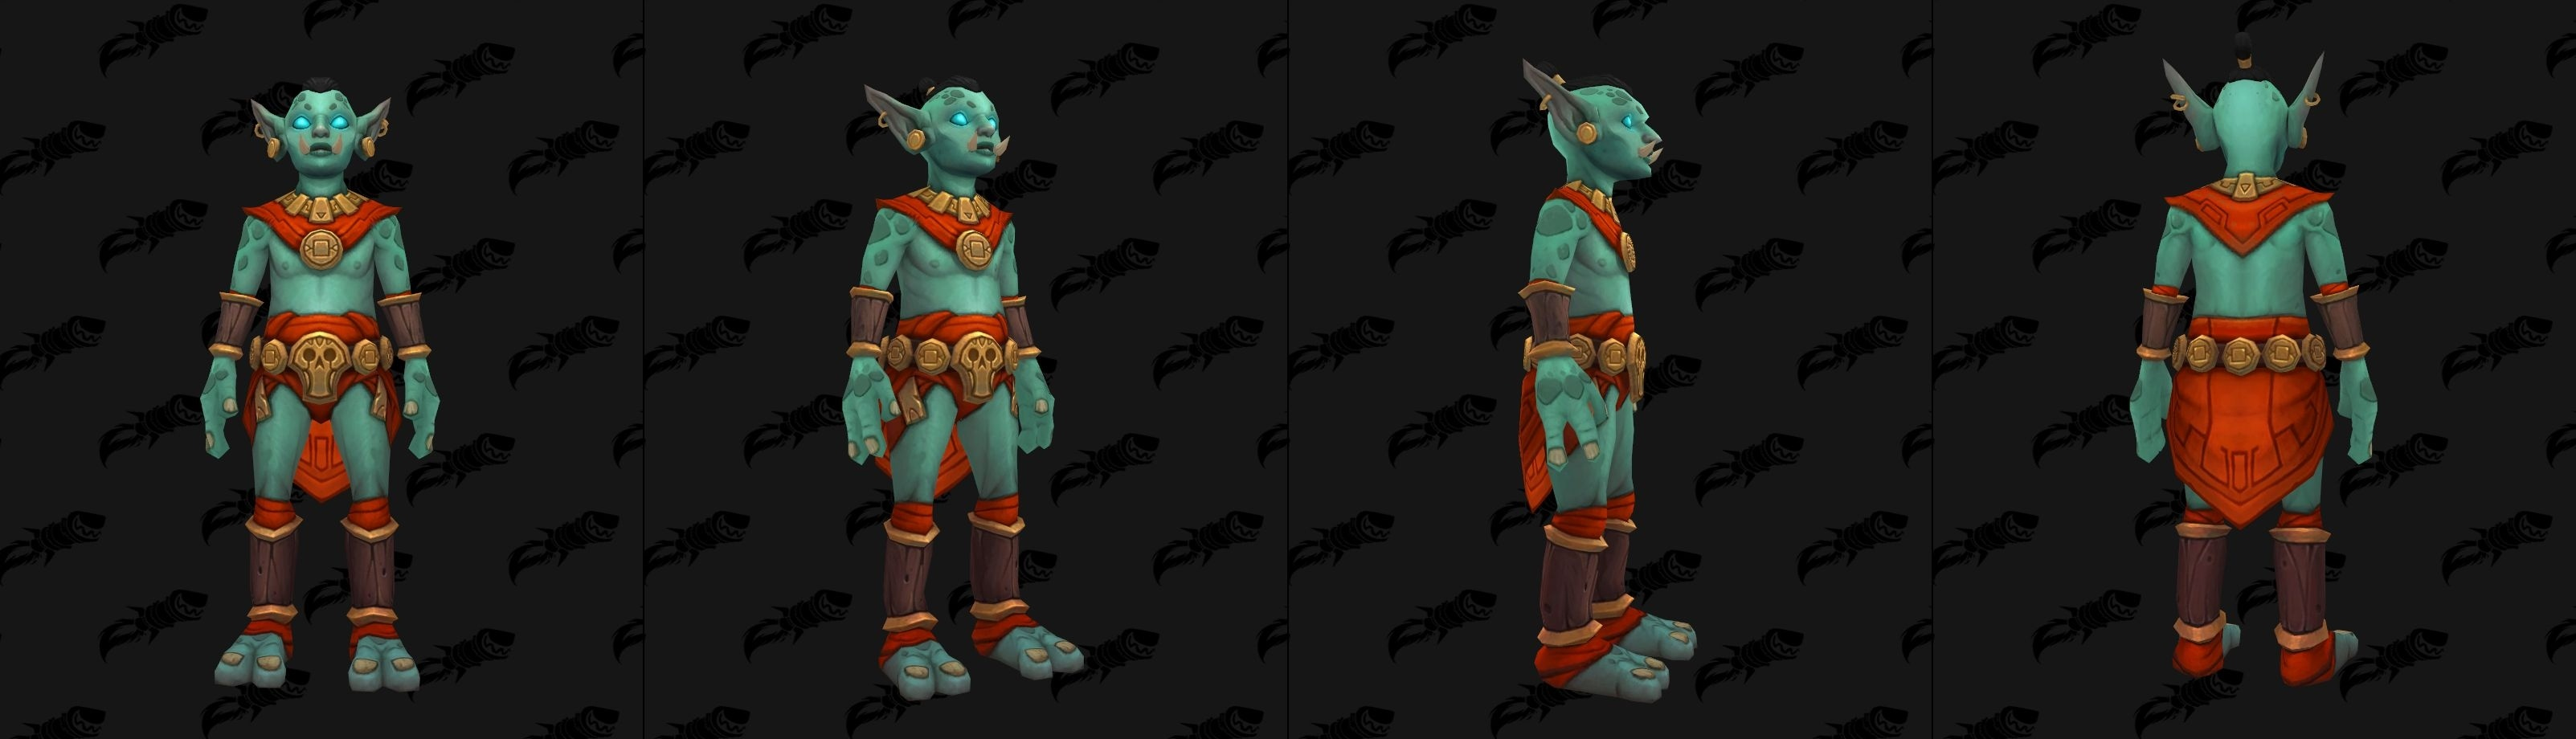 SPECULATION] Queen Azshara of Zin'Azshara, the first ever